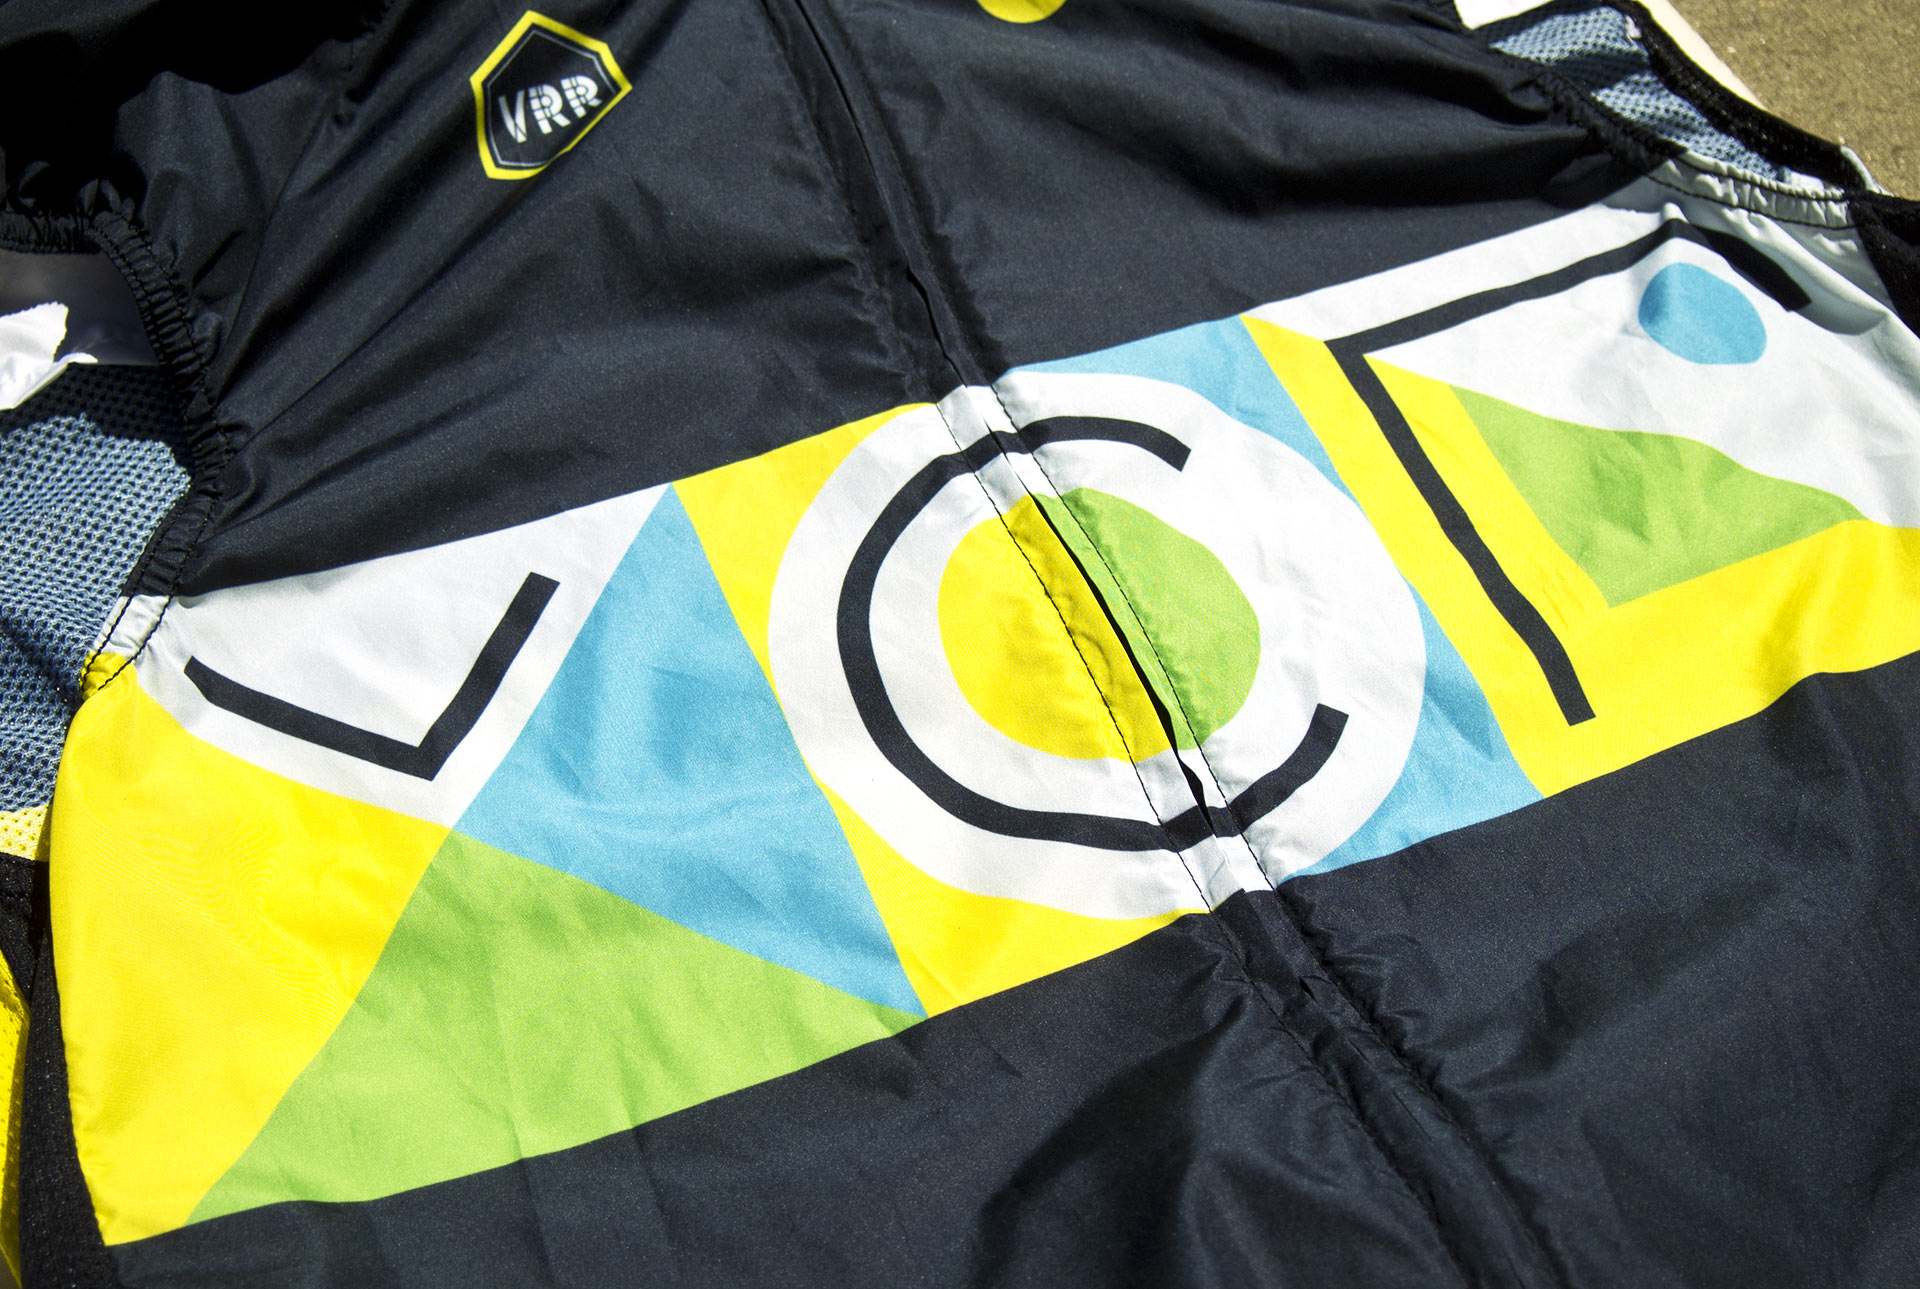 07_gilet_front_vcr